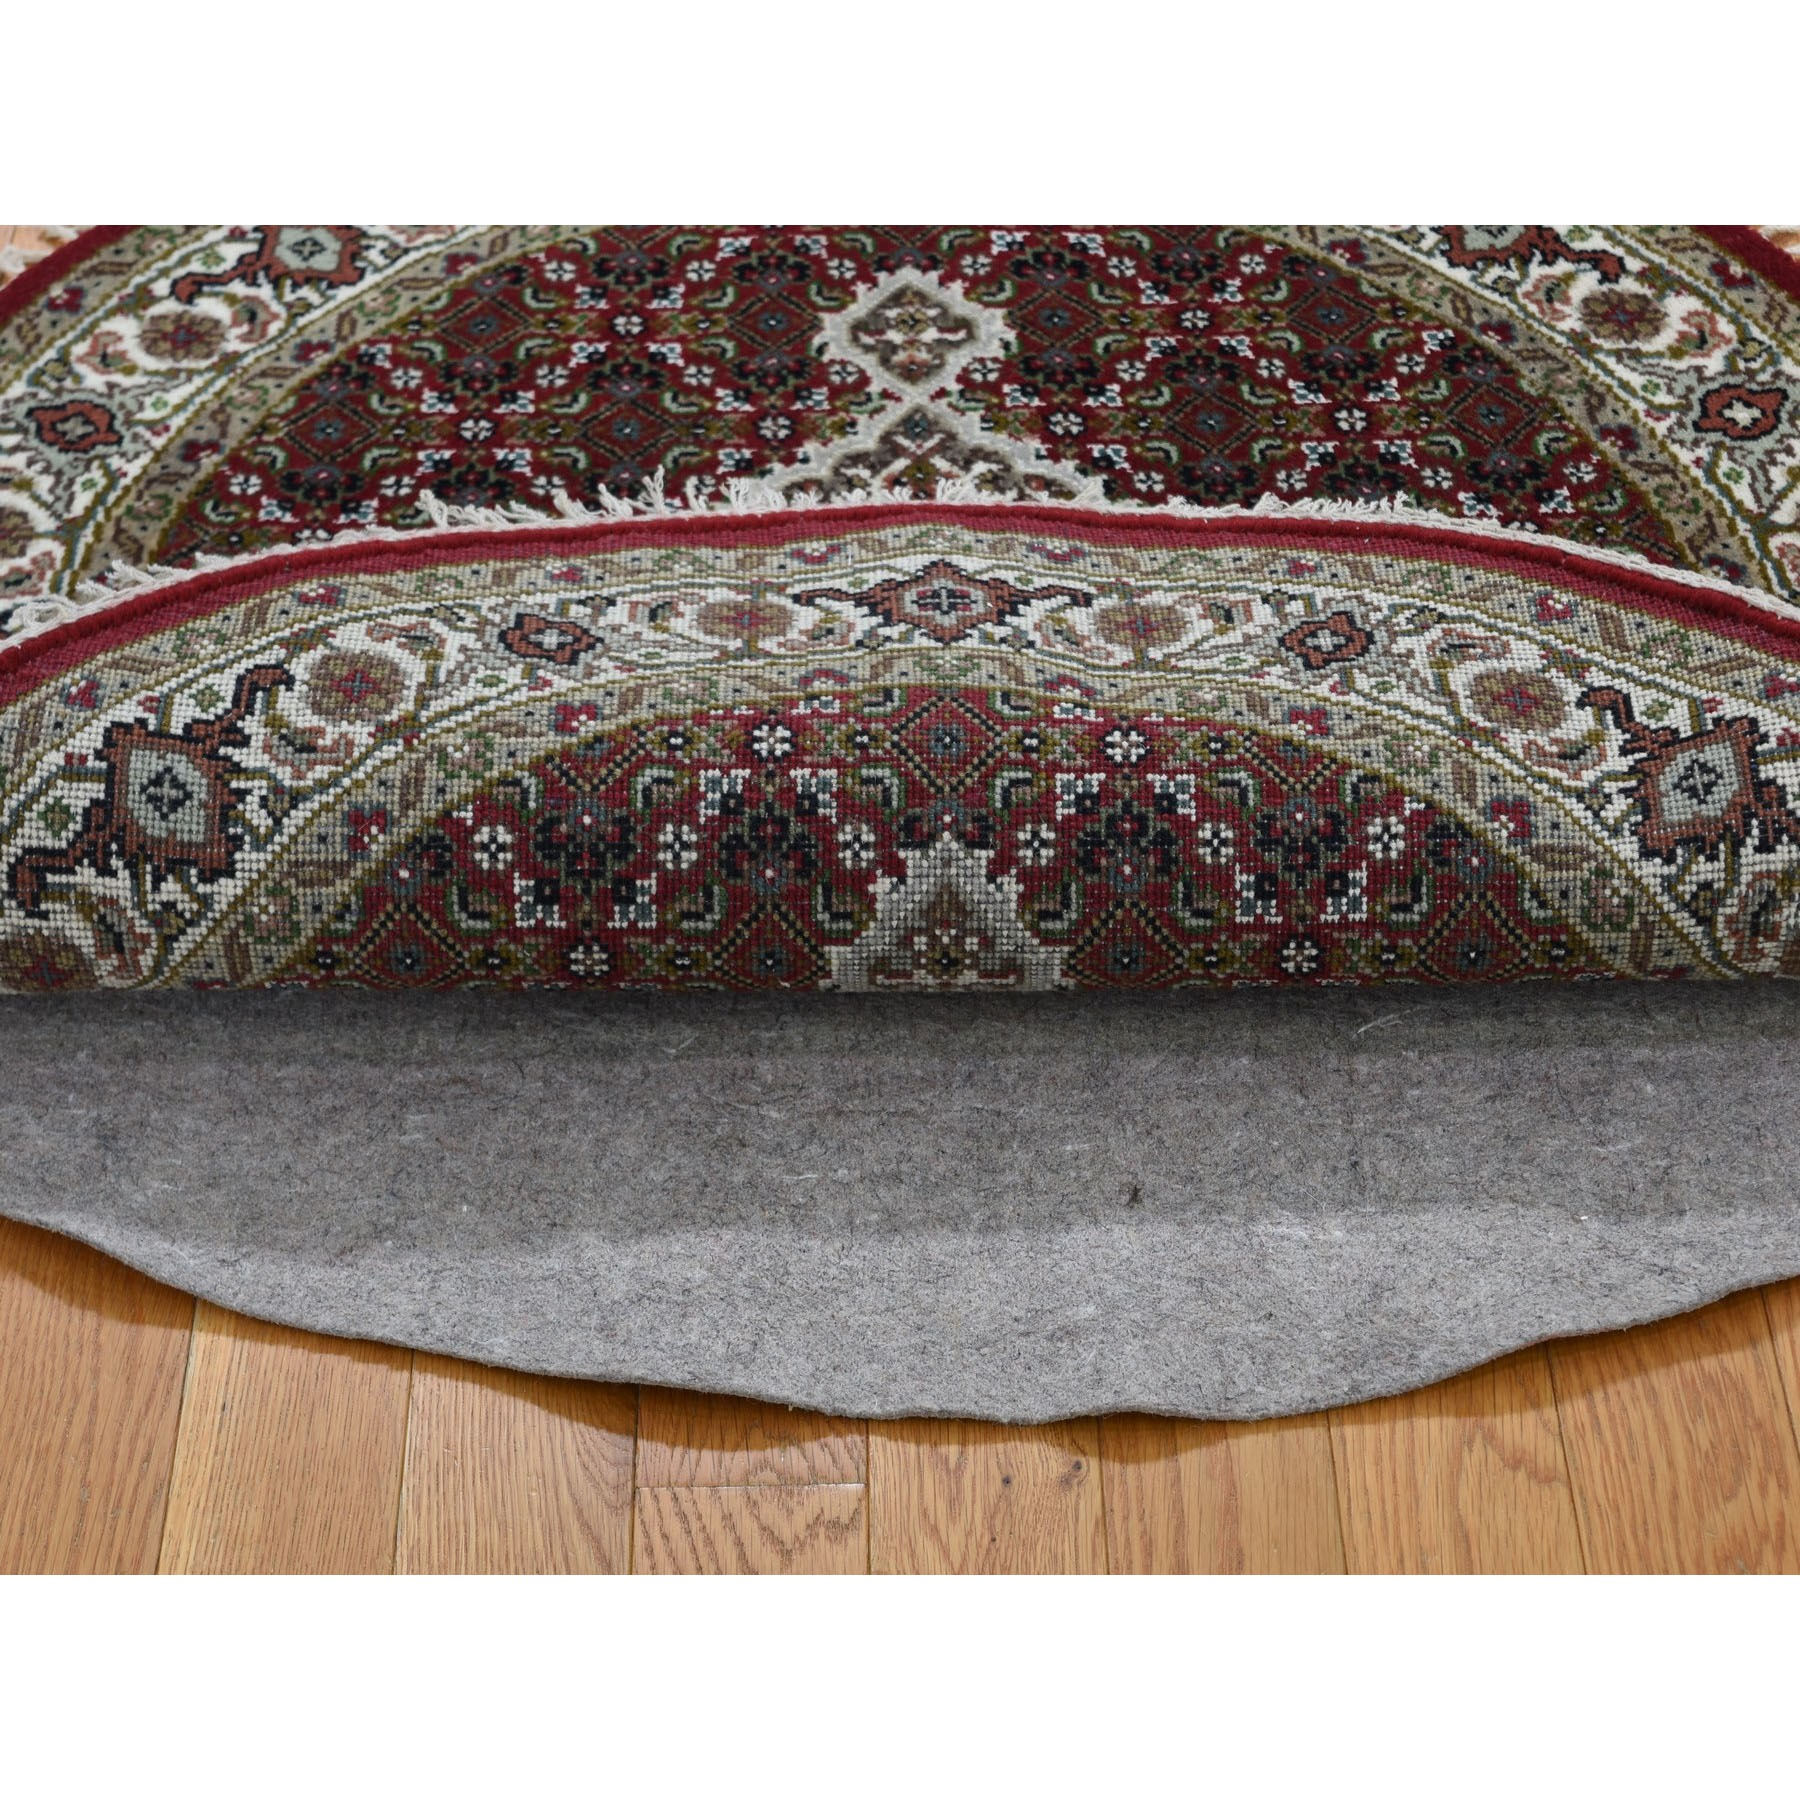 3-4 x3-4  Round Red Tabriz Mahi Wool and Silk Hand Knotted Oriental Rug